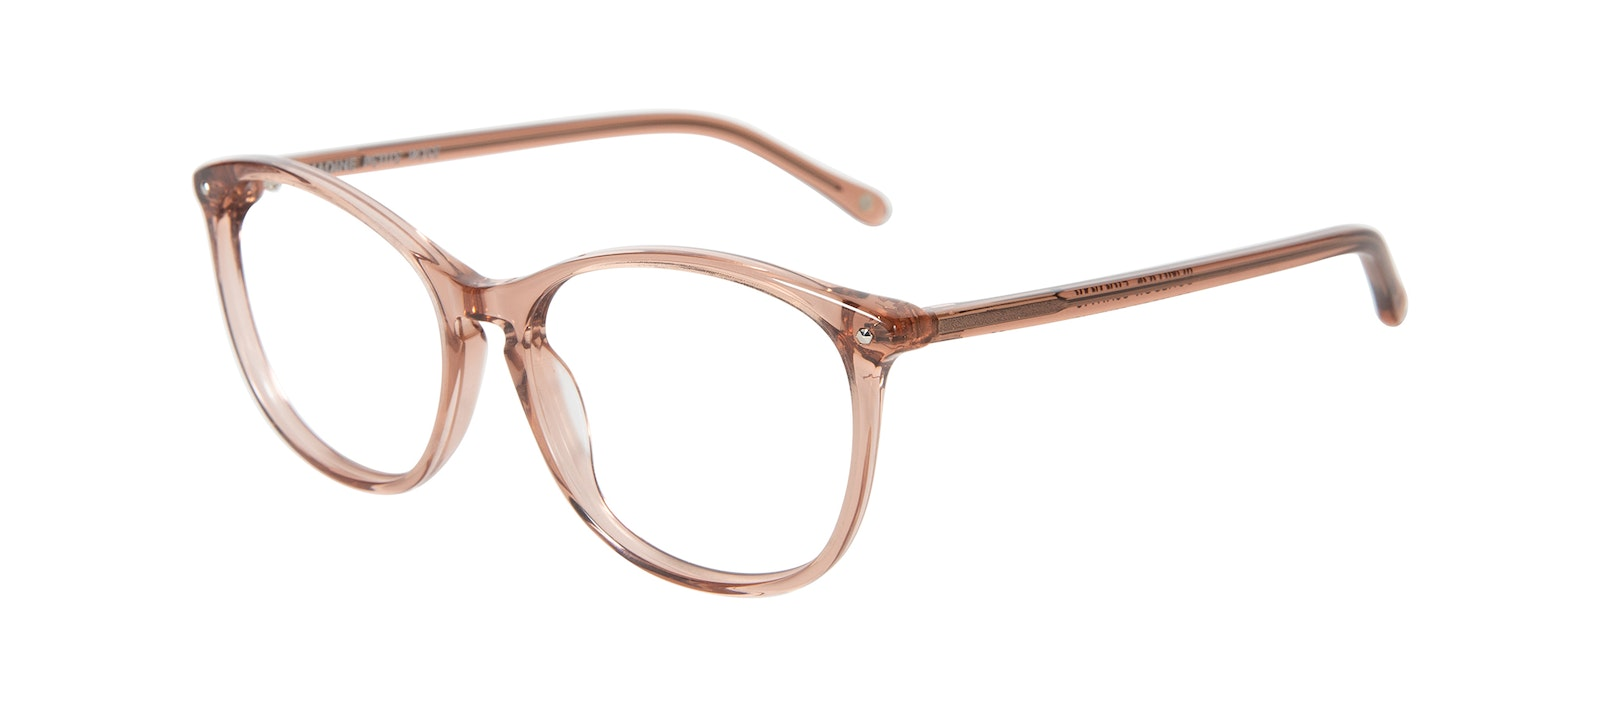 Affordable Fashion Glasses Round Eyeglasses Women Nadine Petite Rose Tilt